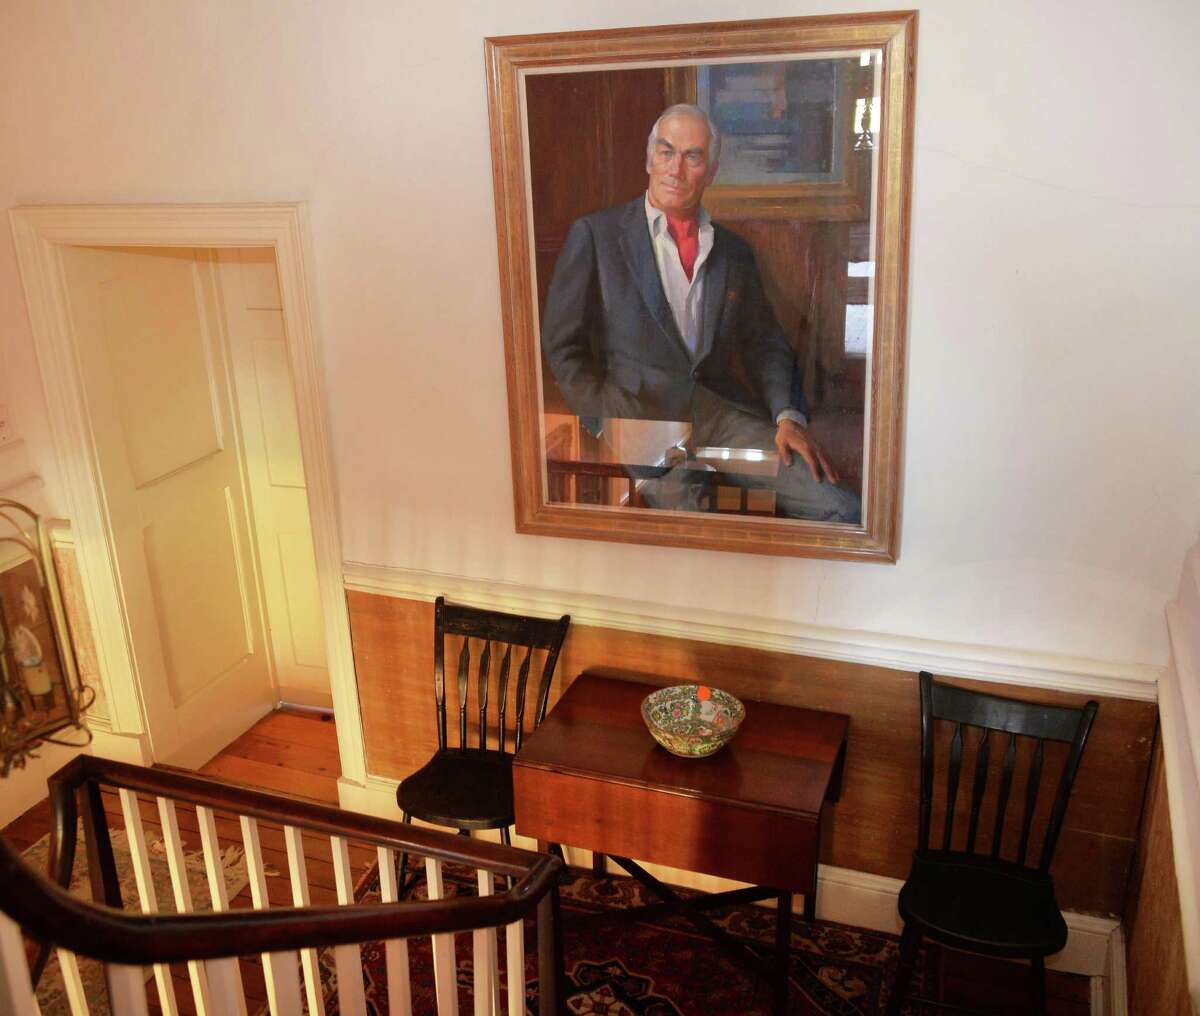 A portrait of philanthropist Carl Touhey in the historic 1755 Gerrit Van Zandt House, for sale along with 105 acres for $1.2 million Tuesday Nov. 3, 2015 in Feura Bush, NY. (John Carl D'Annibale / Times Union)